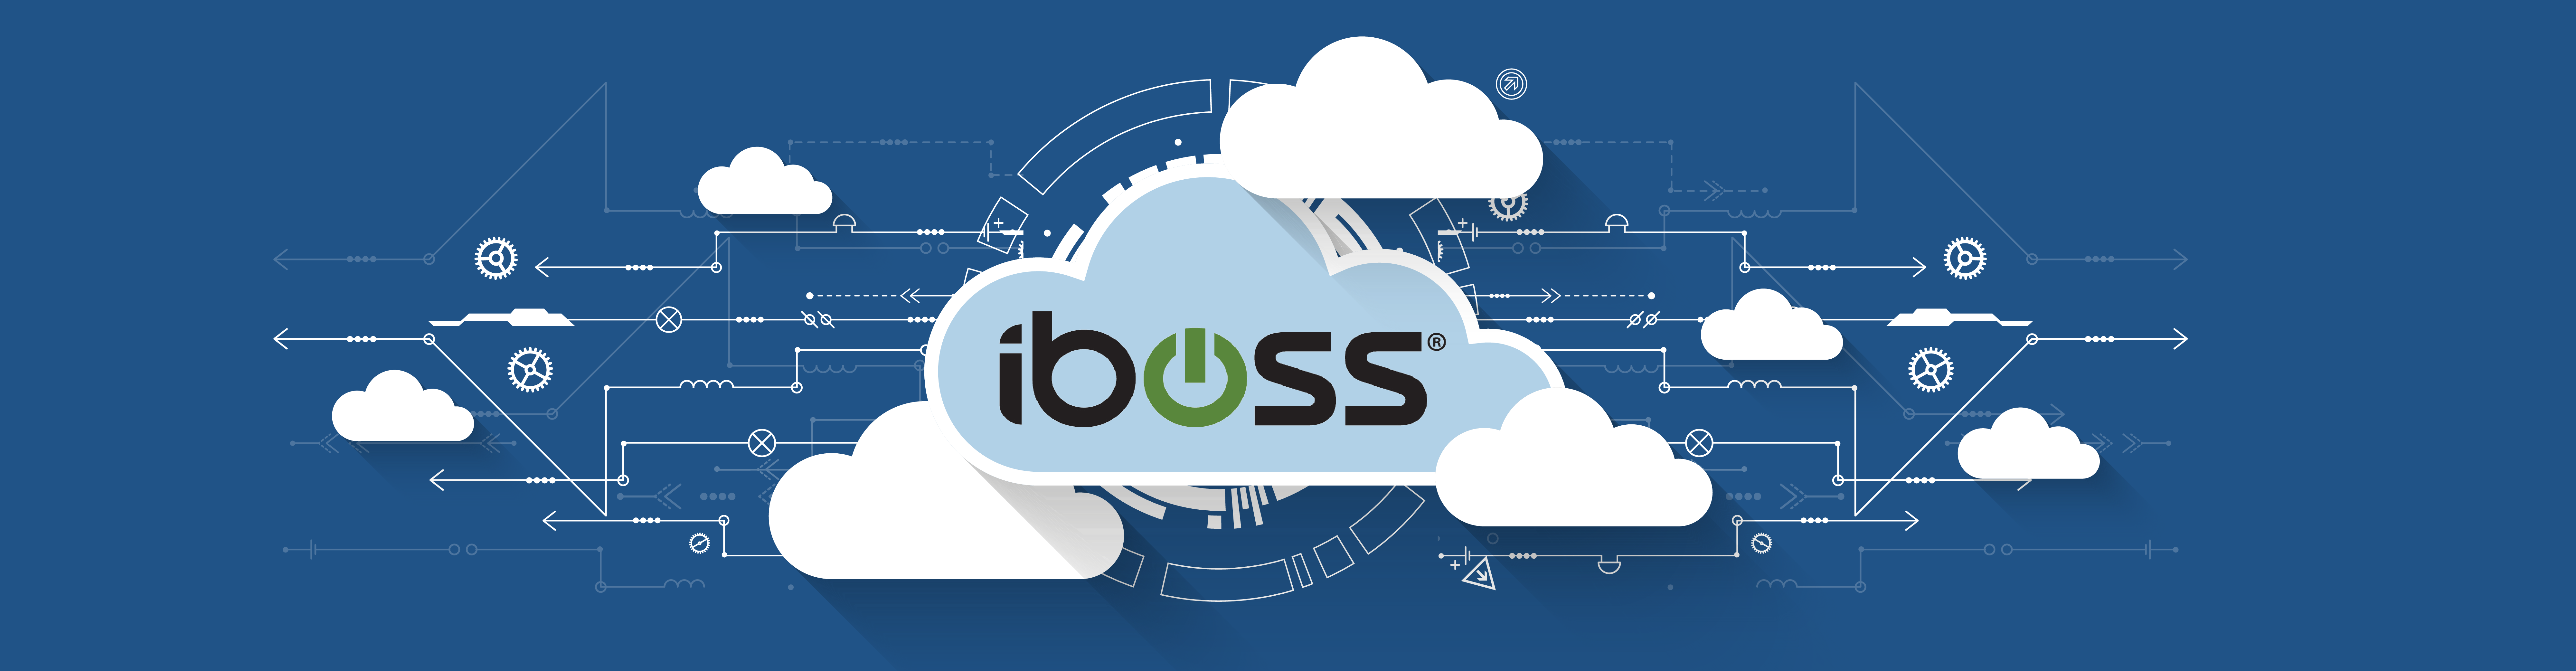 Clouds on blue background, with a cloud that has the iboss logo in the middle.